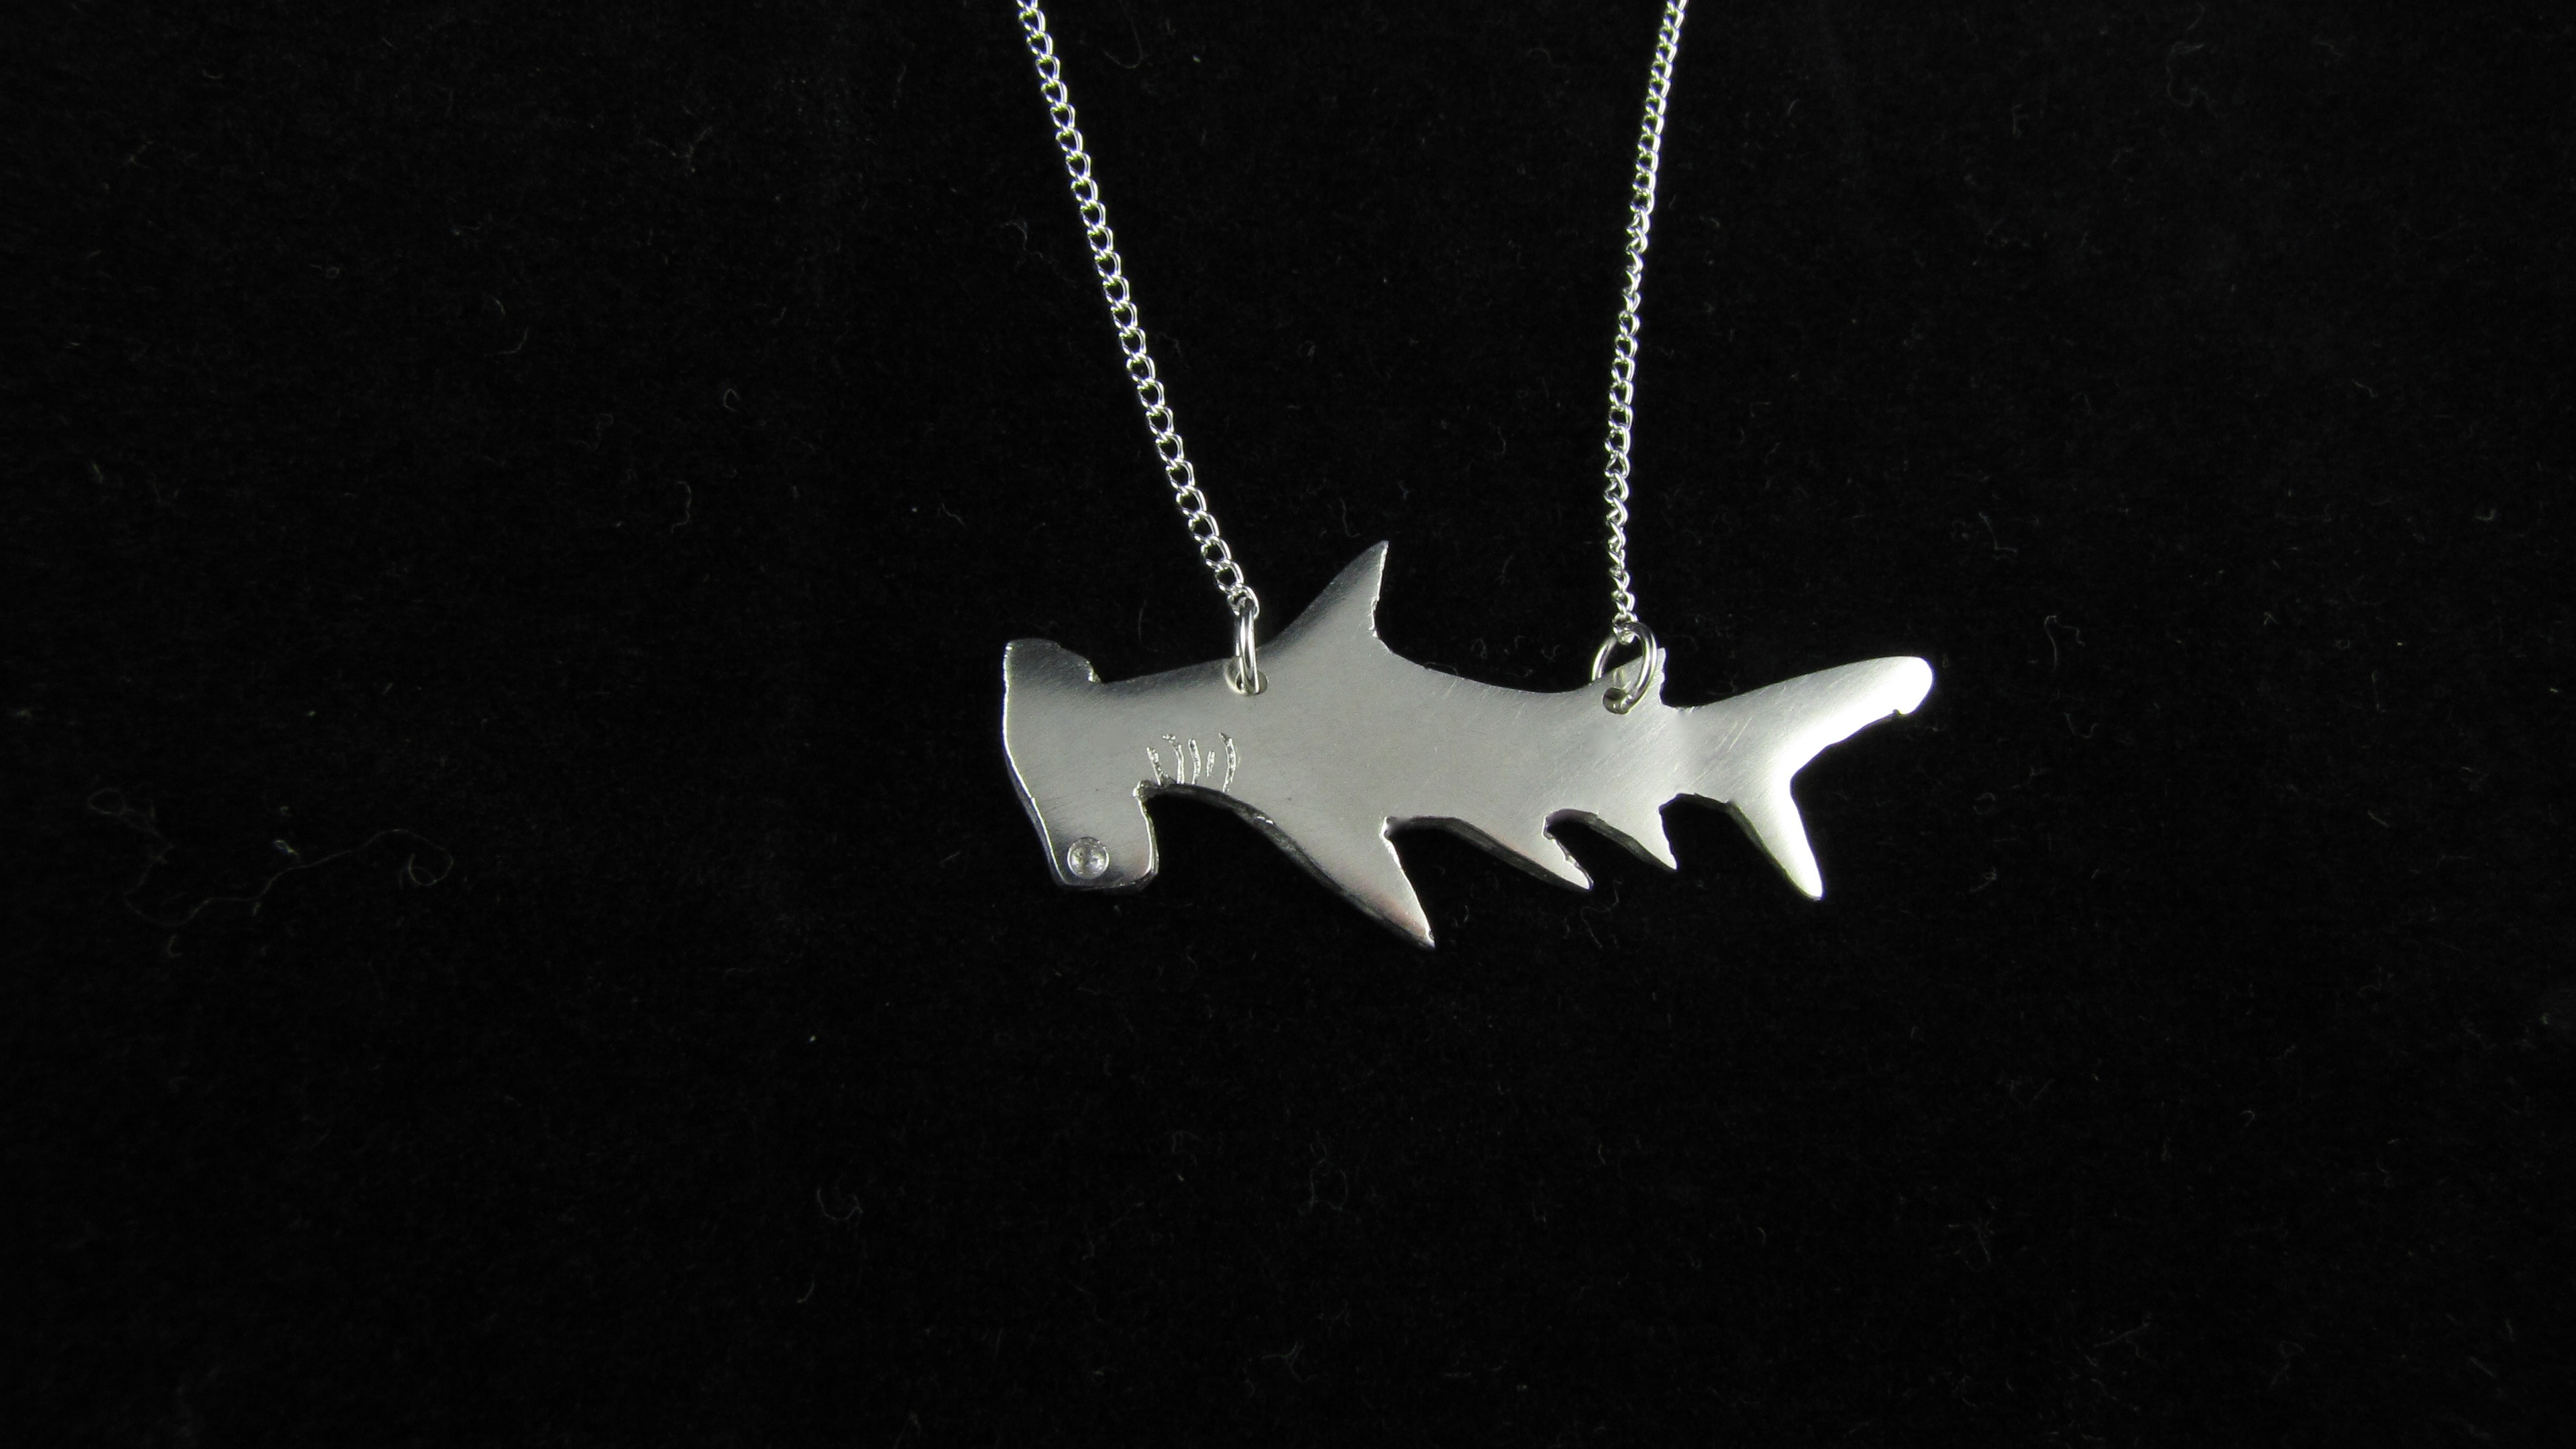 hook printable bracelets necklace shark stl bracelet jewelry hammerhead models model print